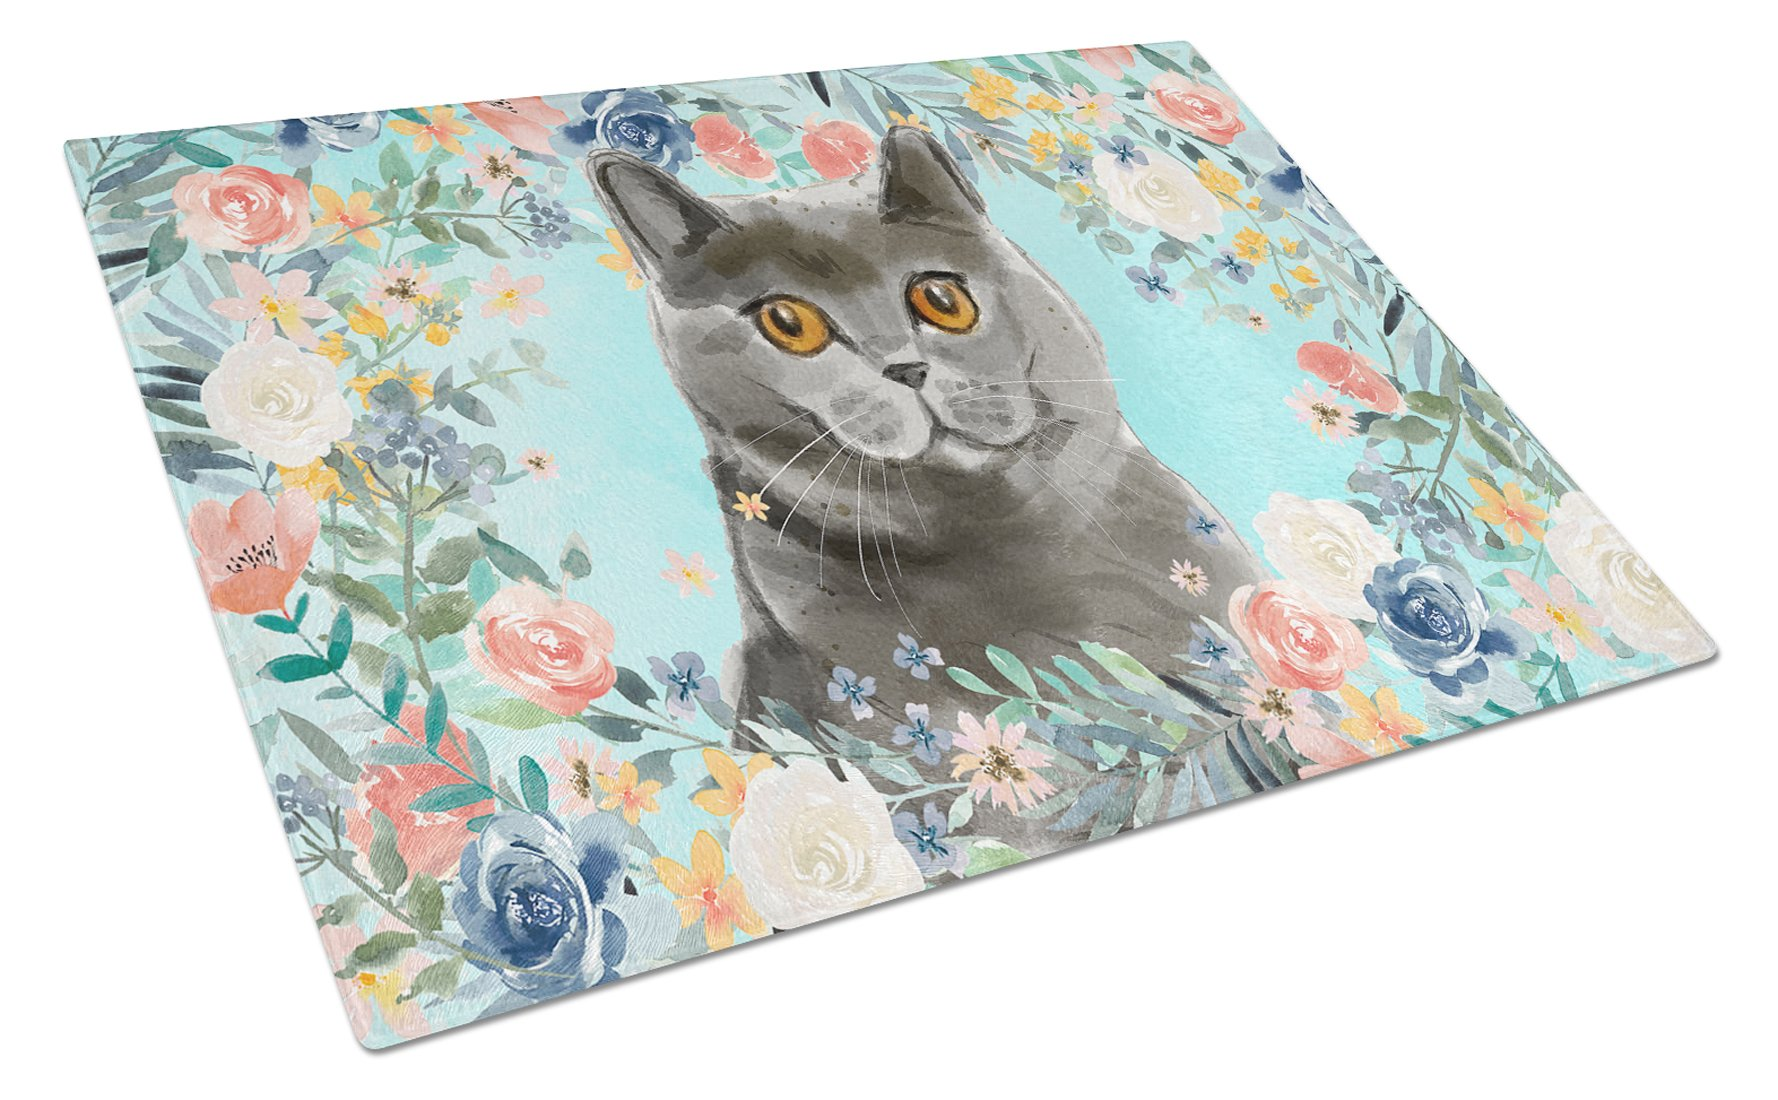 British Shorthair Spring Flowers Glass Cutting Board Large CK3392LCB by Caroline's Treasures